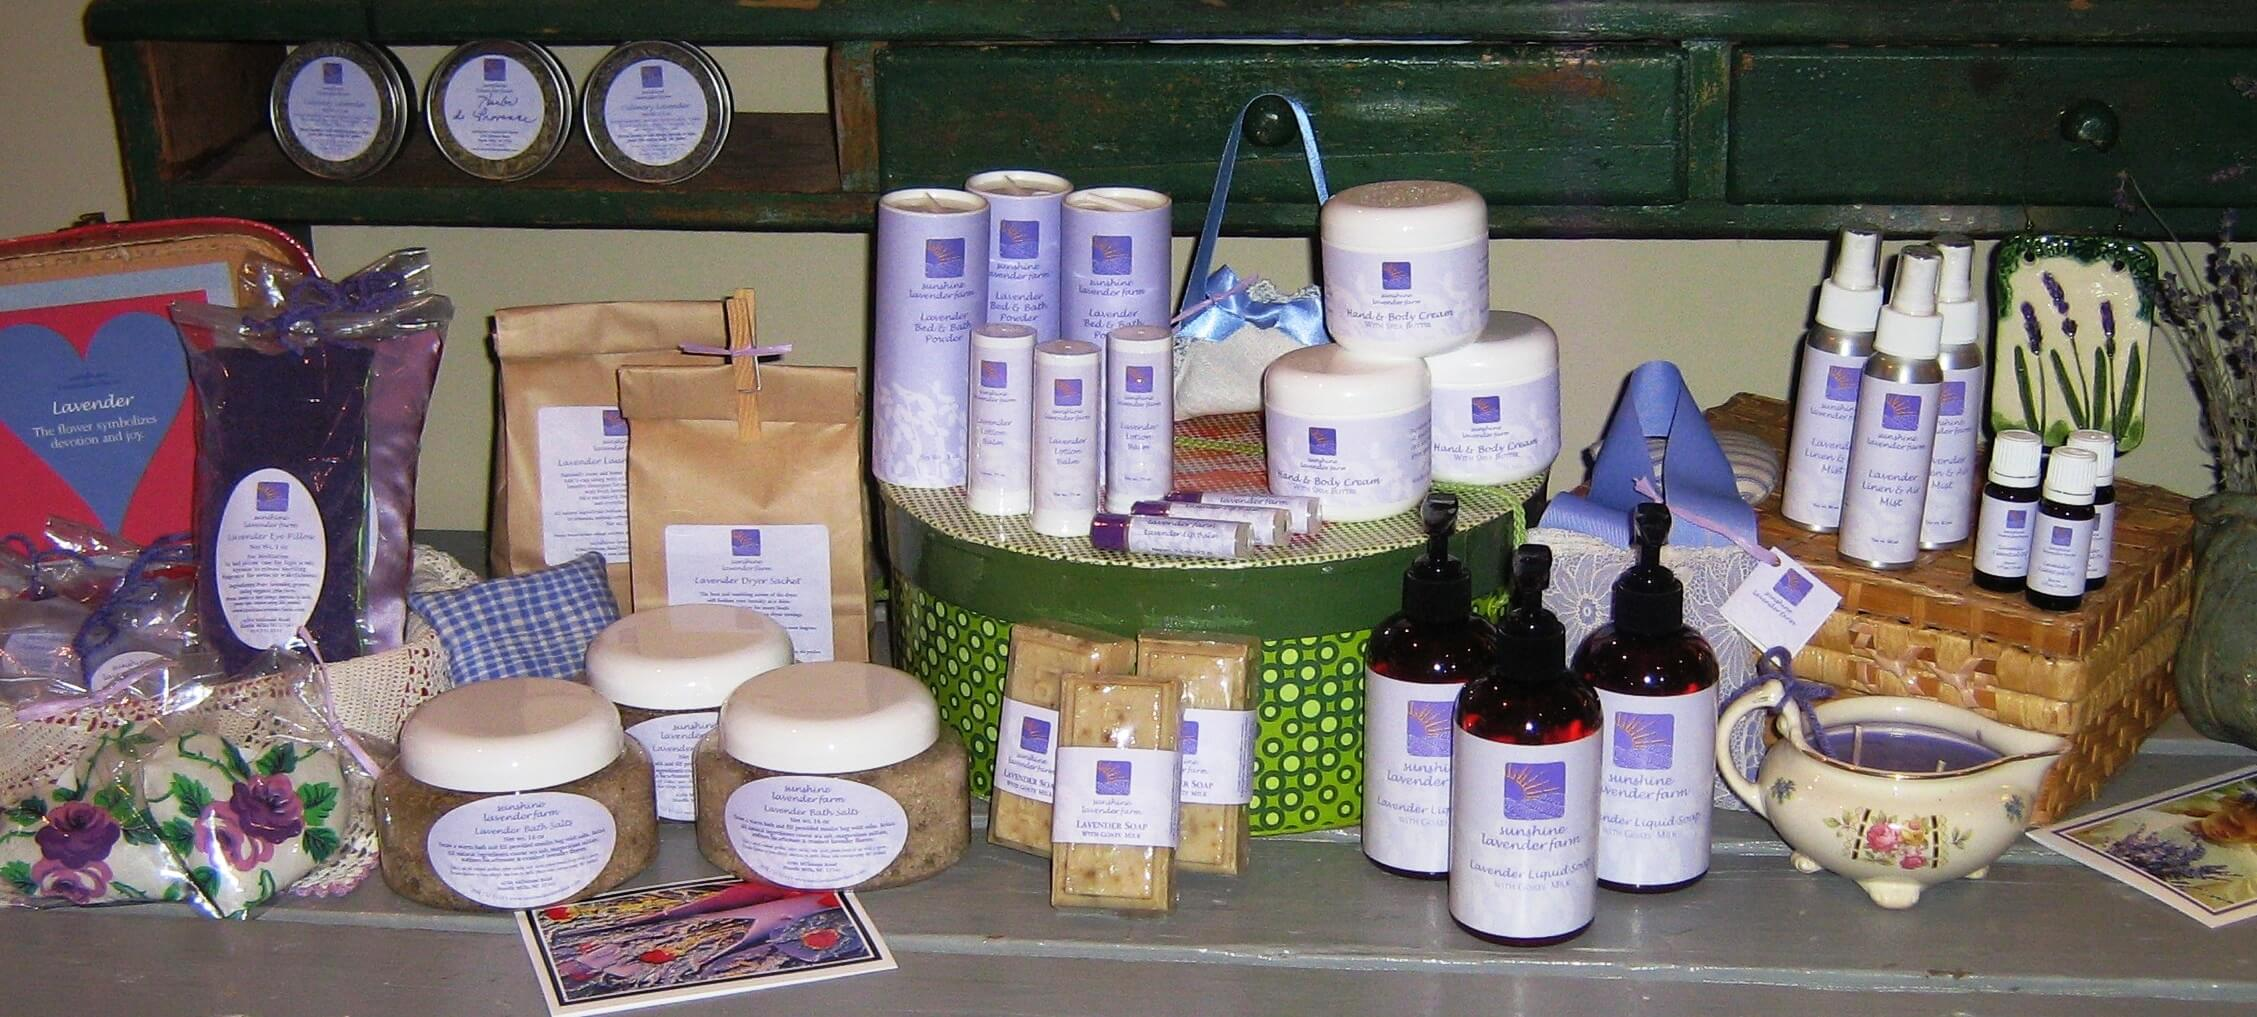 Lavender products from sunshine lavender